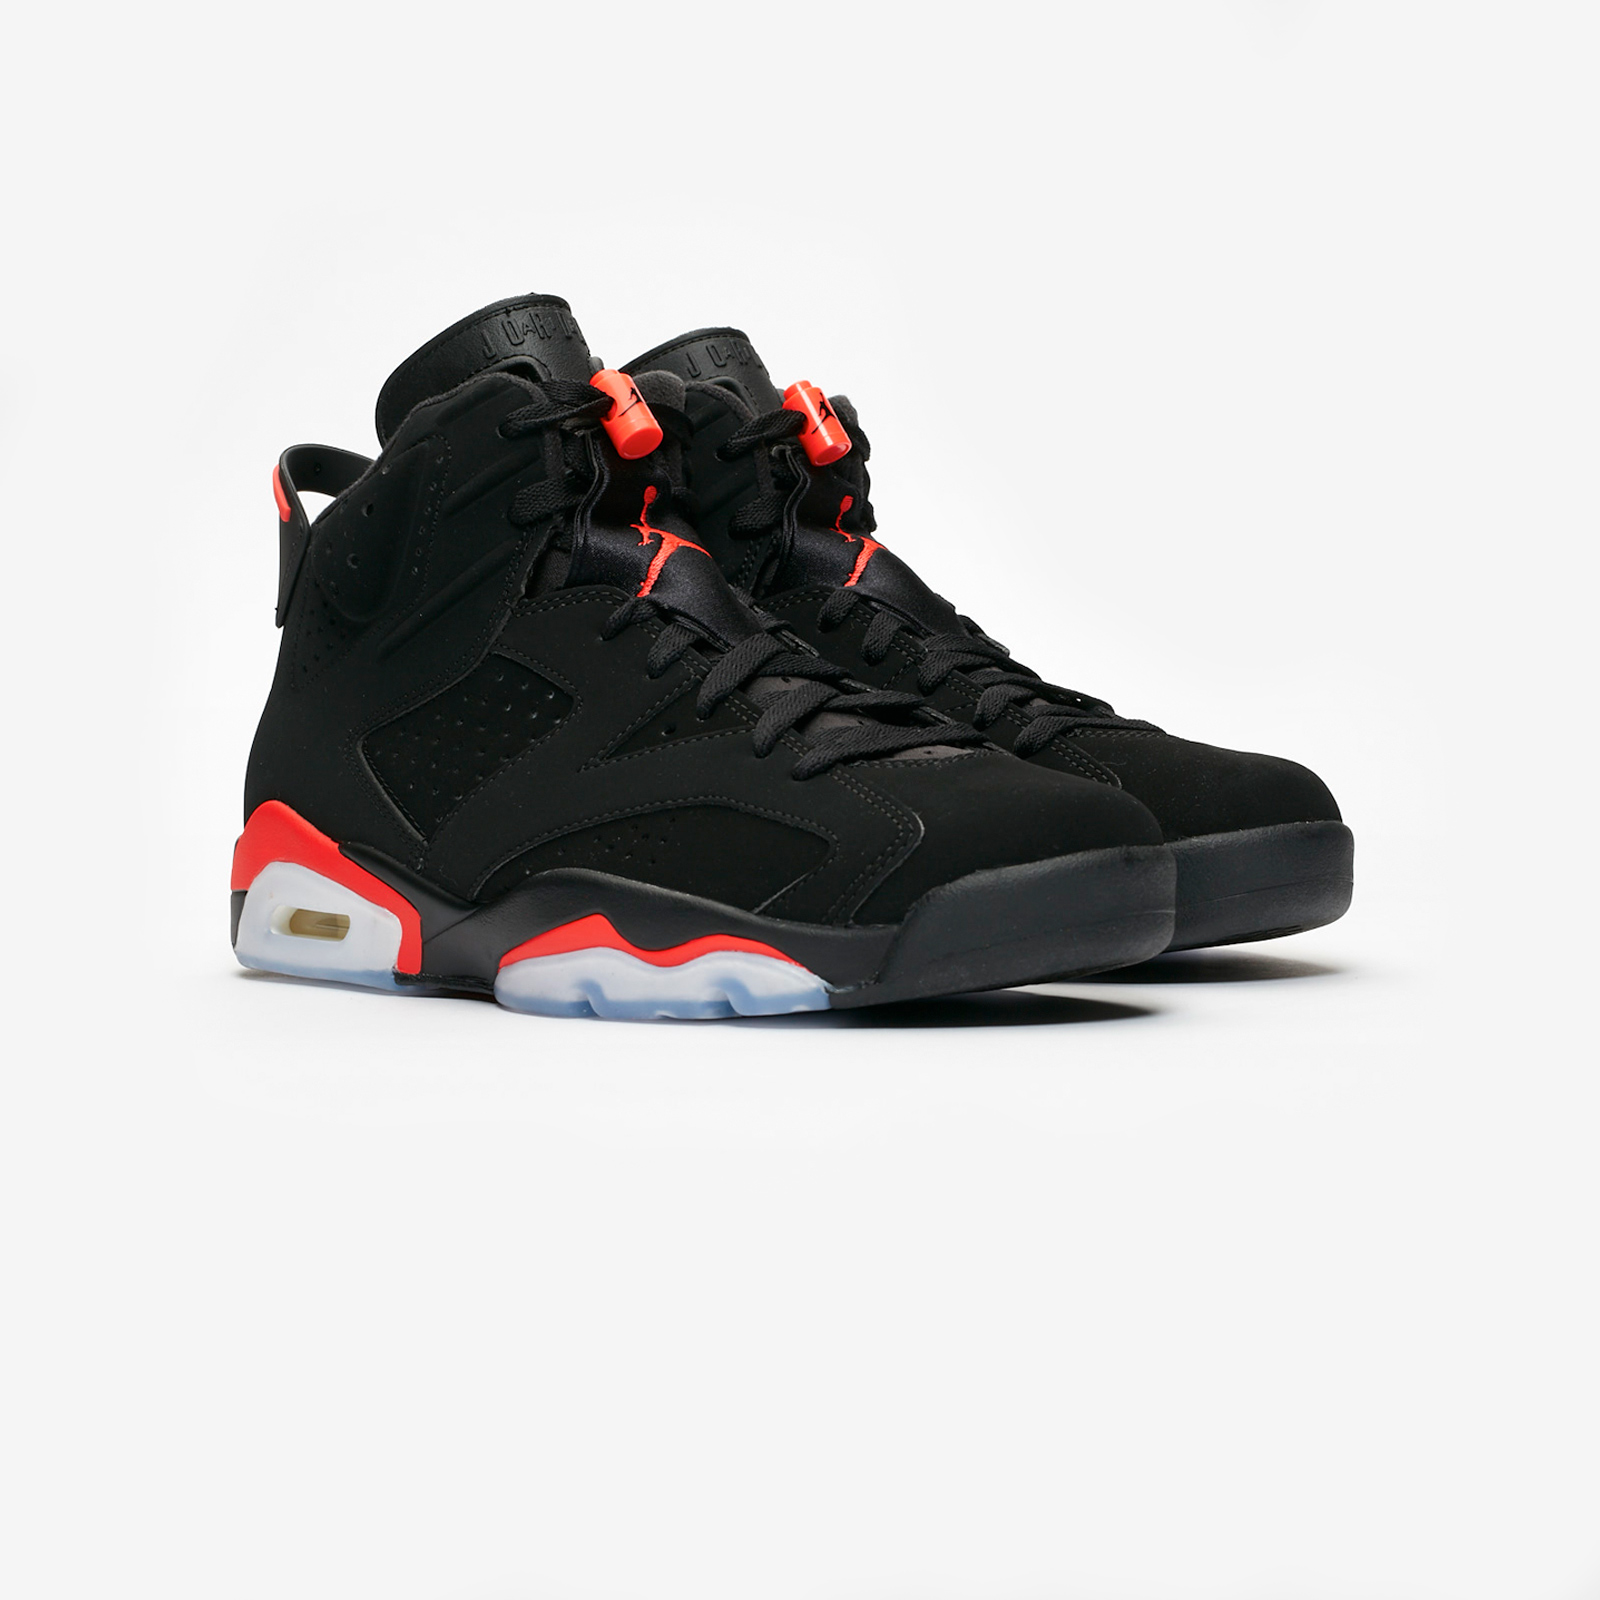 164ff310542fb7 Jordan Brand Air Jordan 6 Retro - 384664-060 - Sneakersnstuff ...